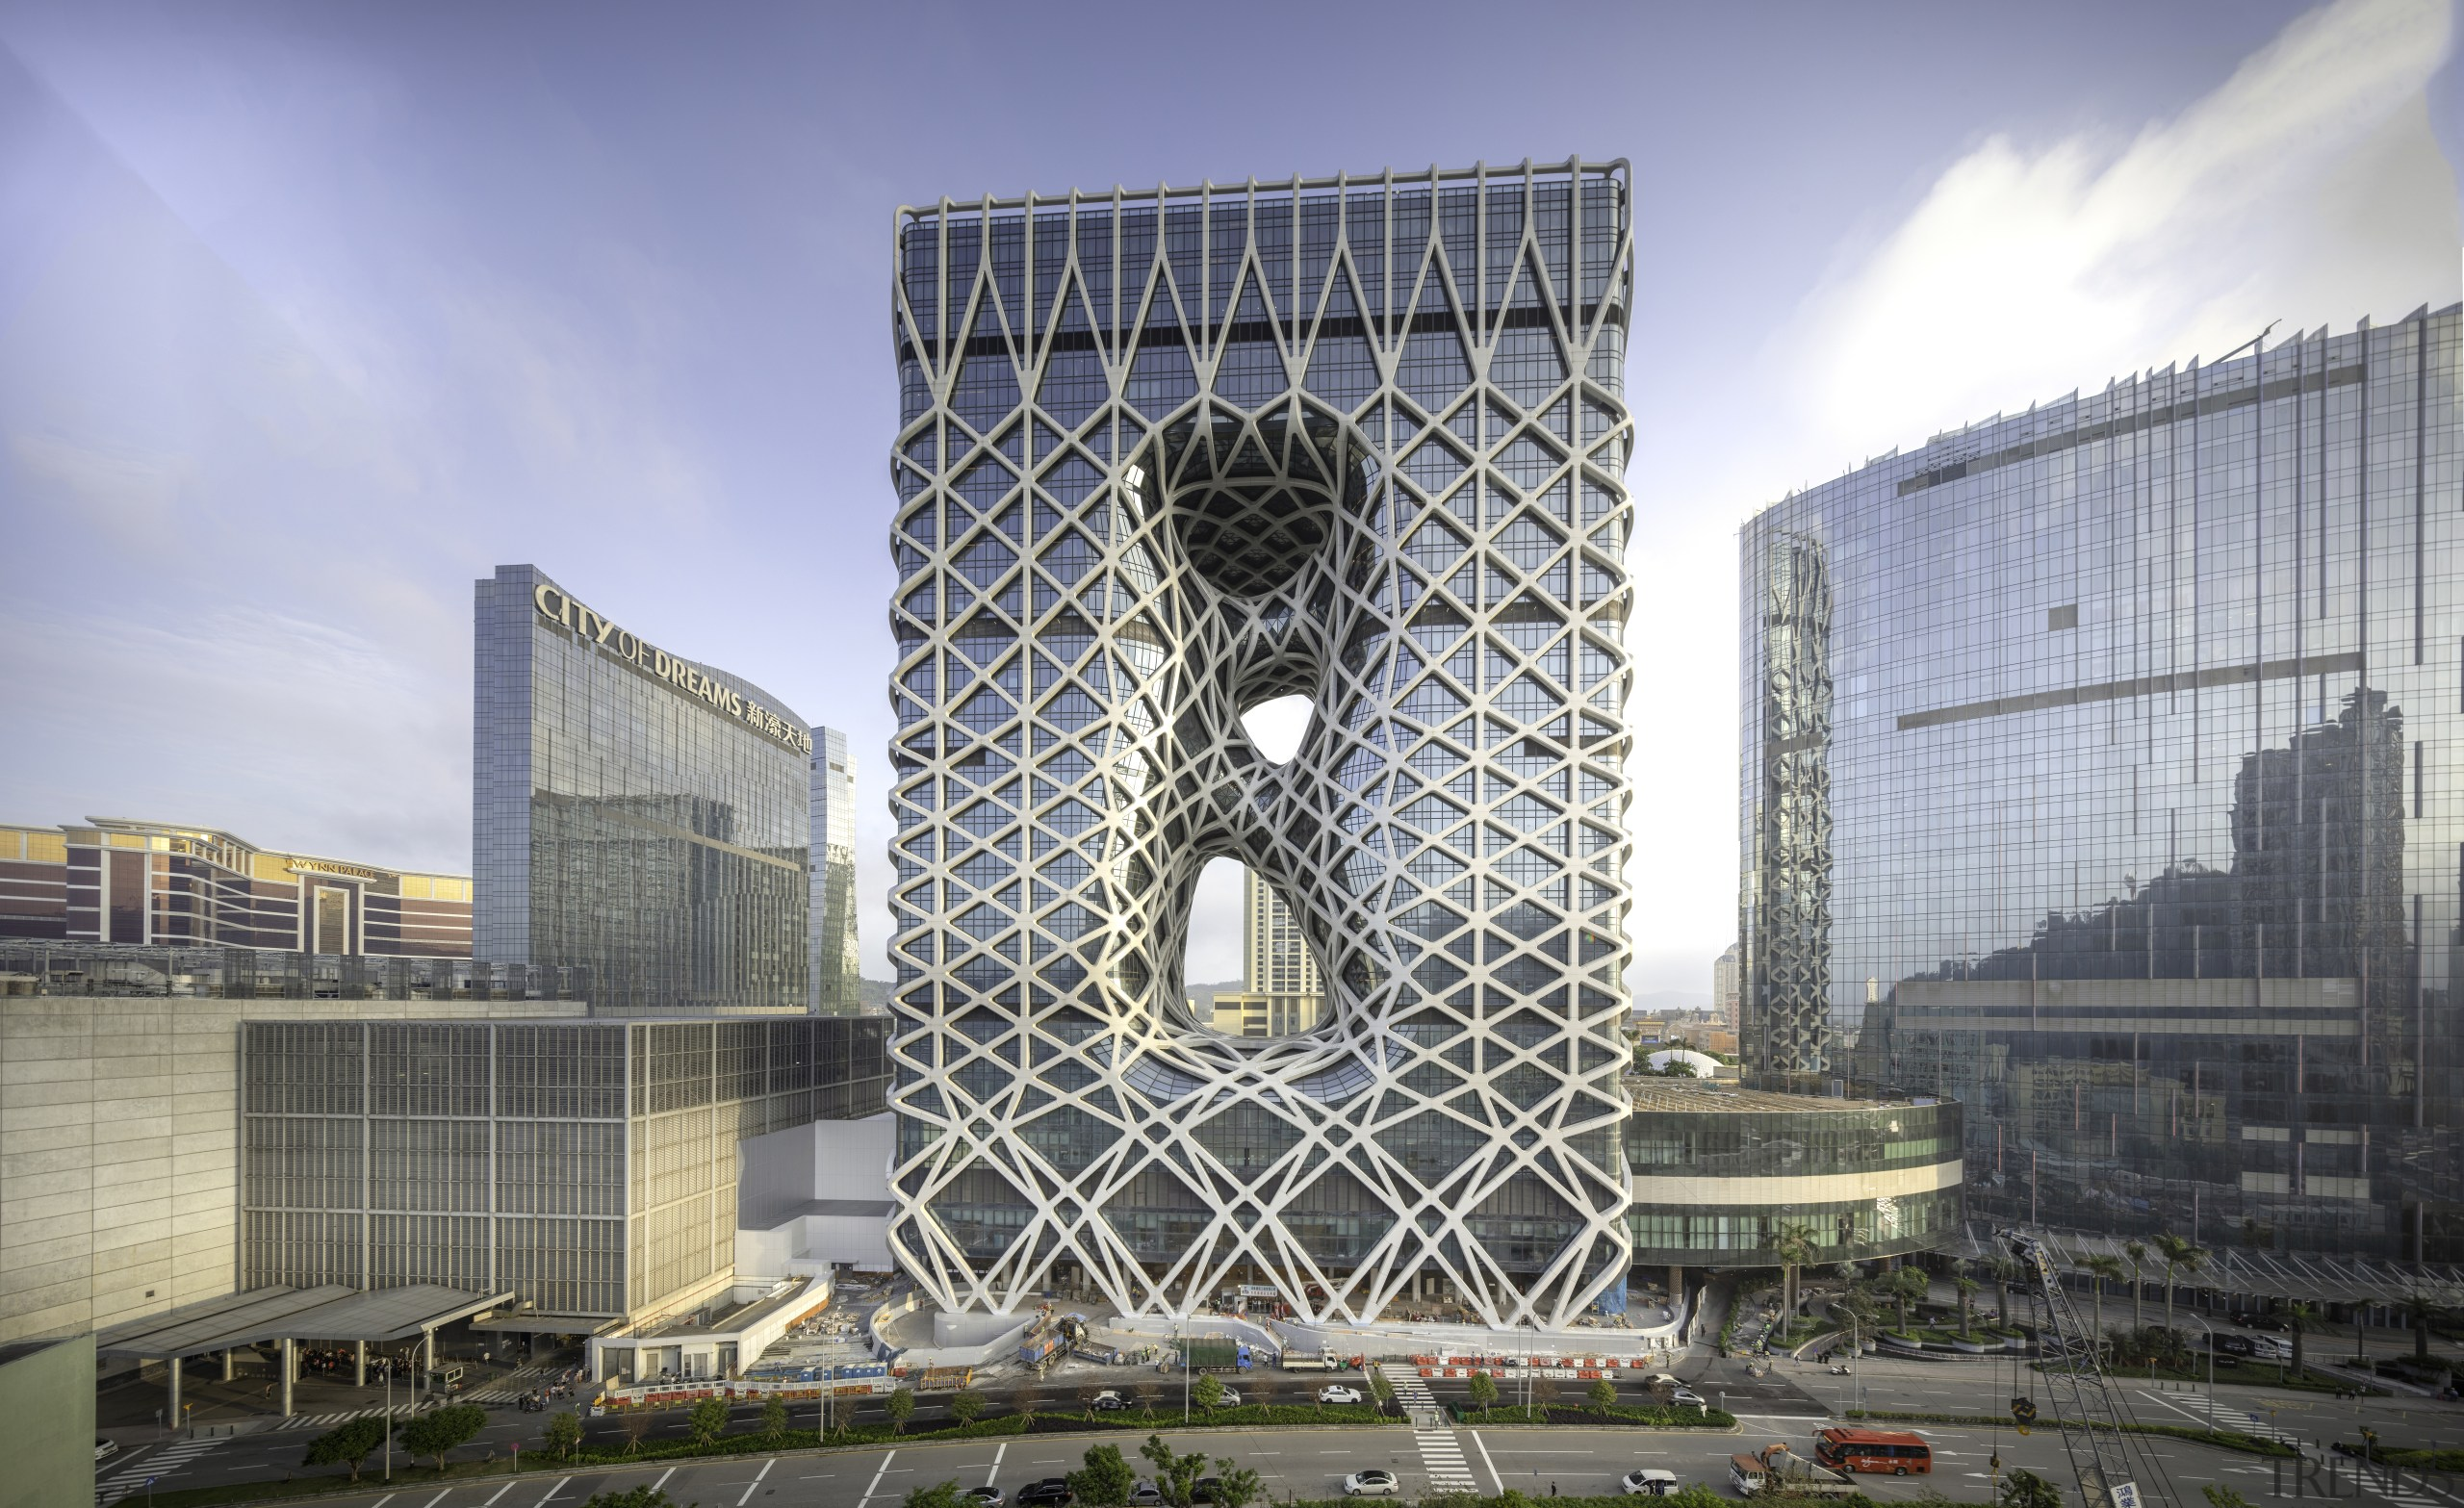 A fluid 'net' of structural beams forms the architecture, building, city, commercial building, condominium, corporate headquarters, daytime, headquarters, landmark, metropolis, metropolitan area, mixed use, sky, skyscraper, tower, tower block, teal, gray